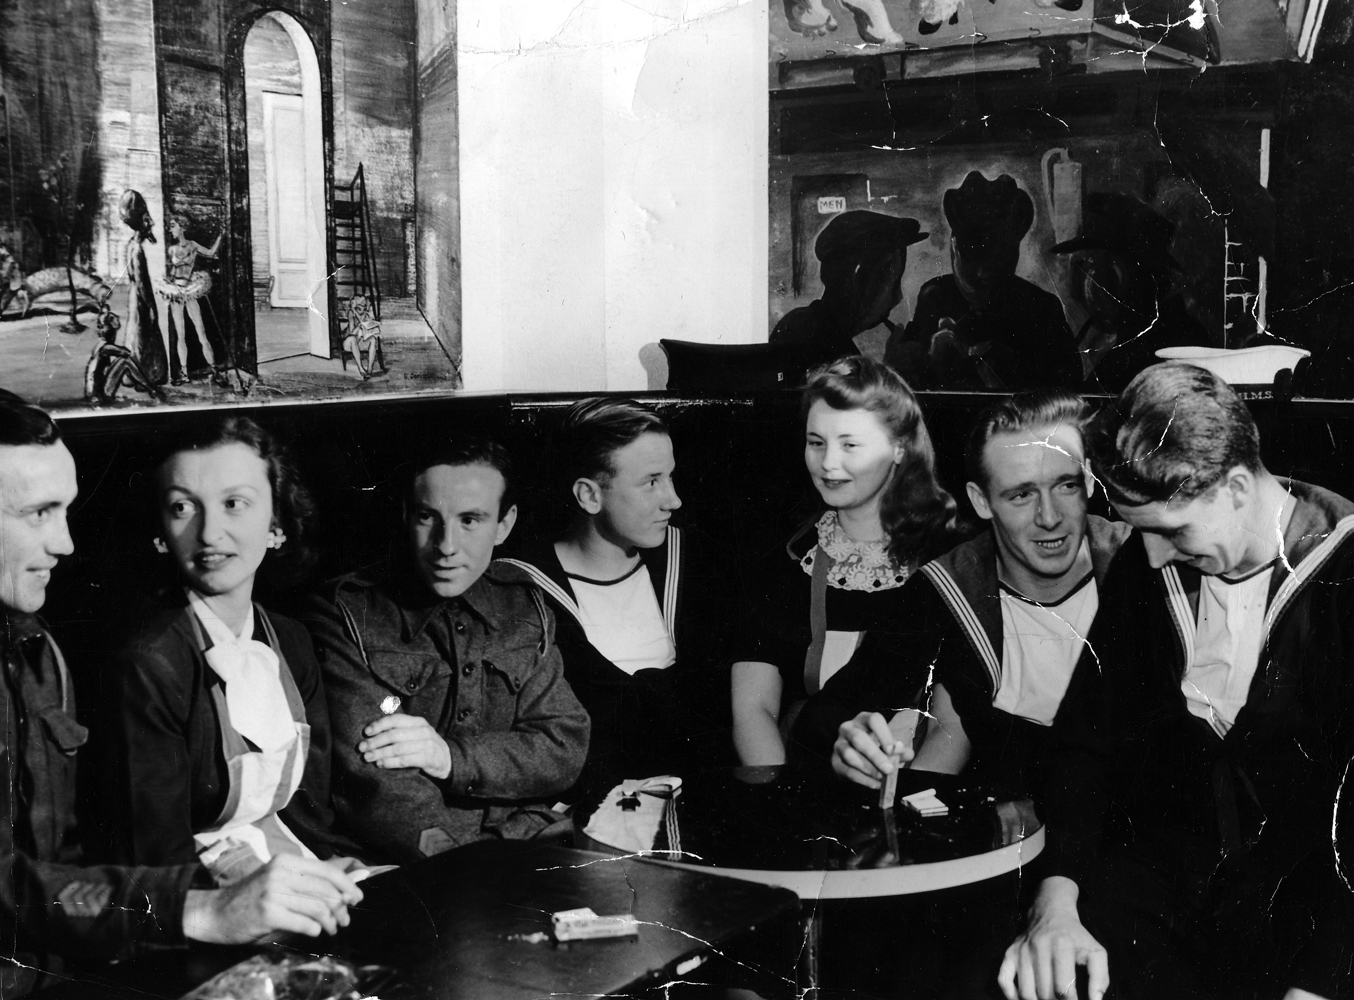 Members Of Armed Forces And Ladies Chatting In A Bar 1940s